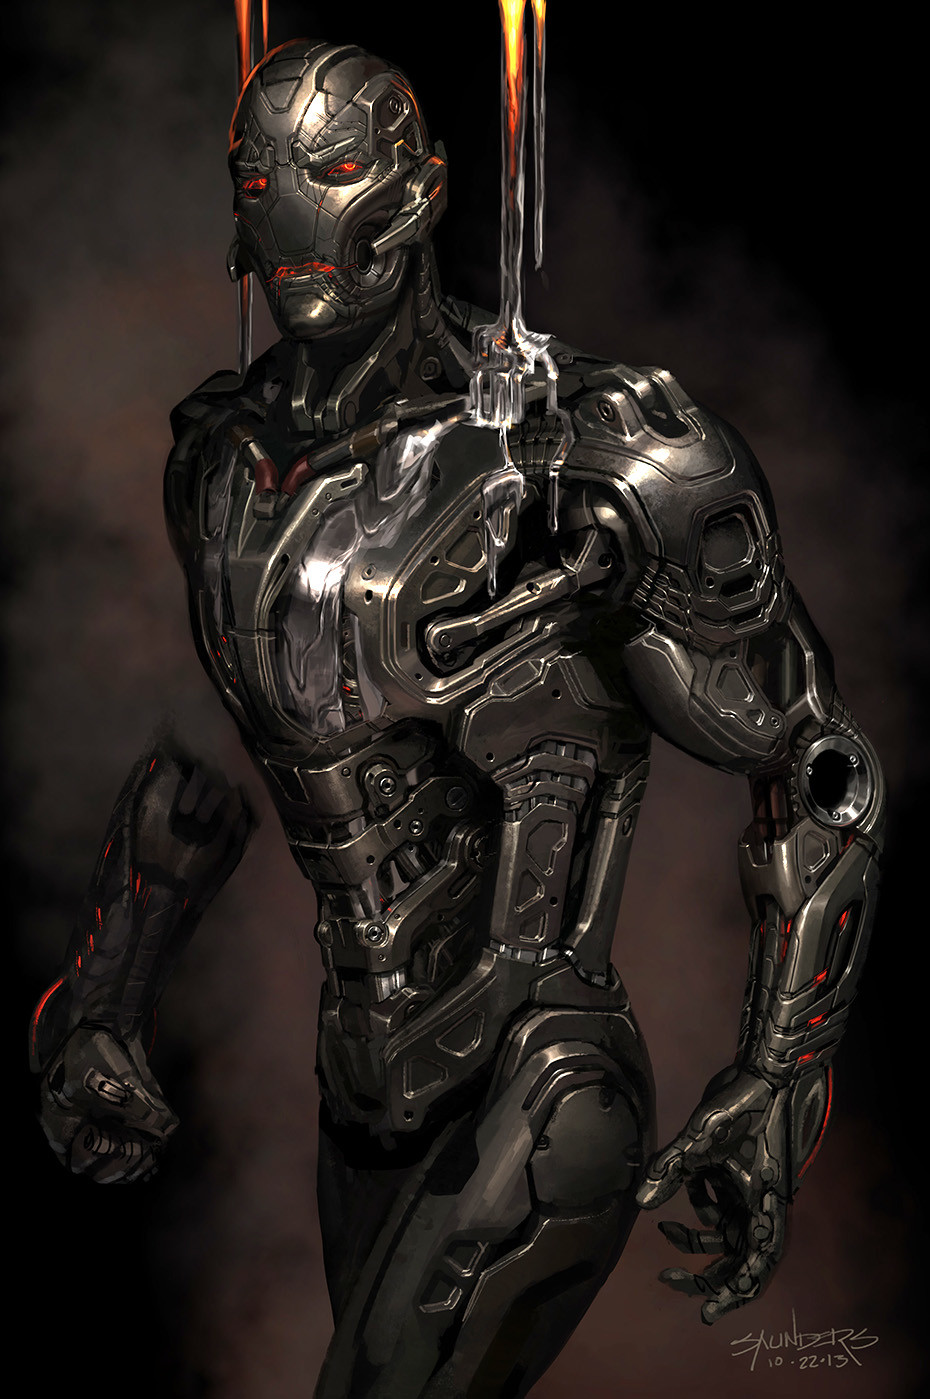 A concept for how Ultron Prime would look with Molten Vibranium pouring onto his body.